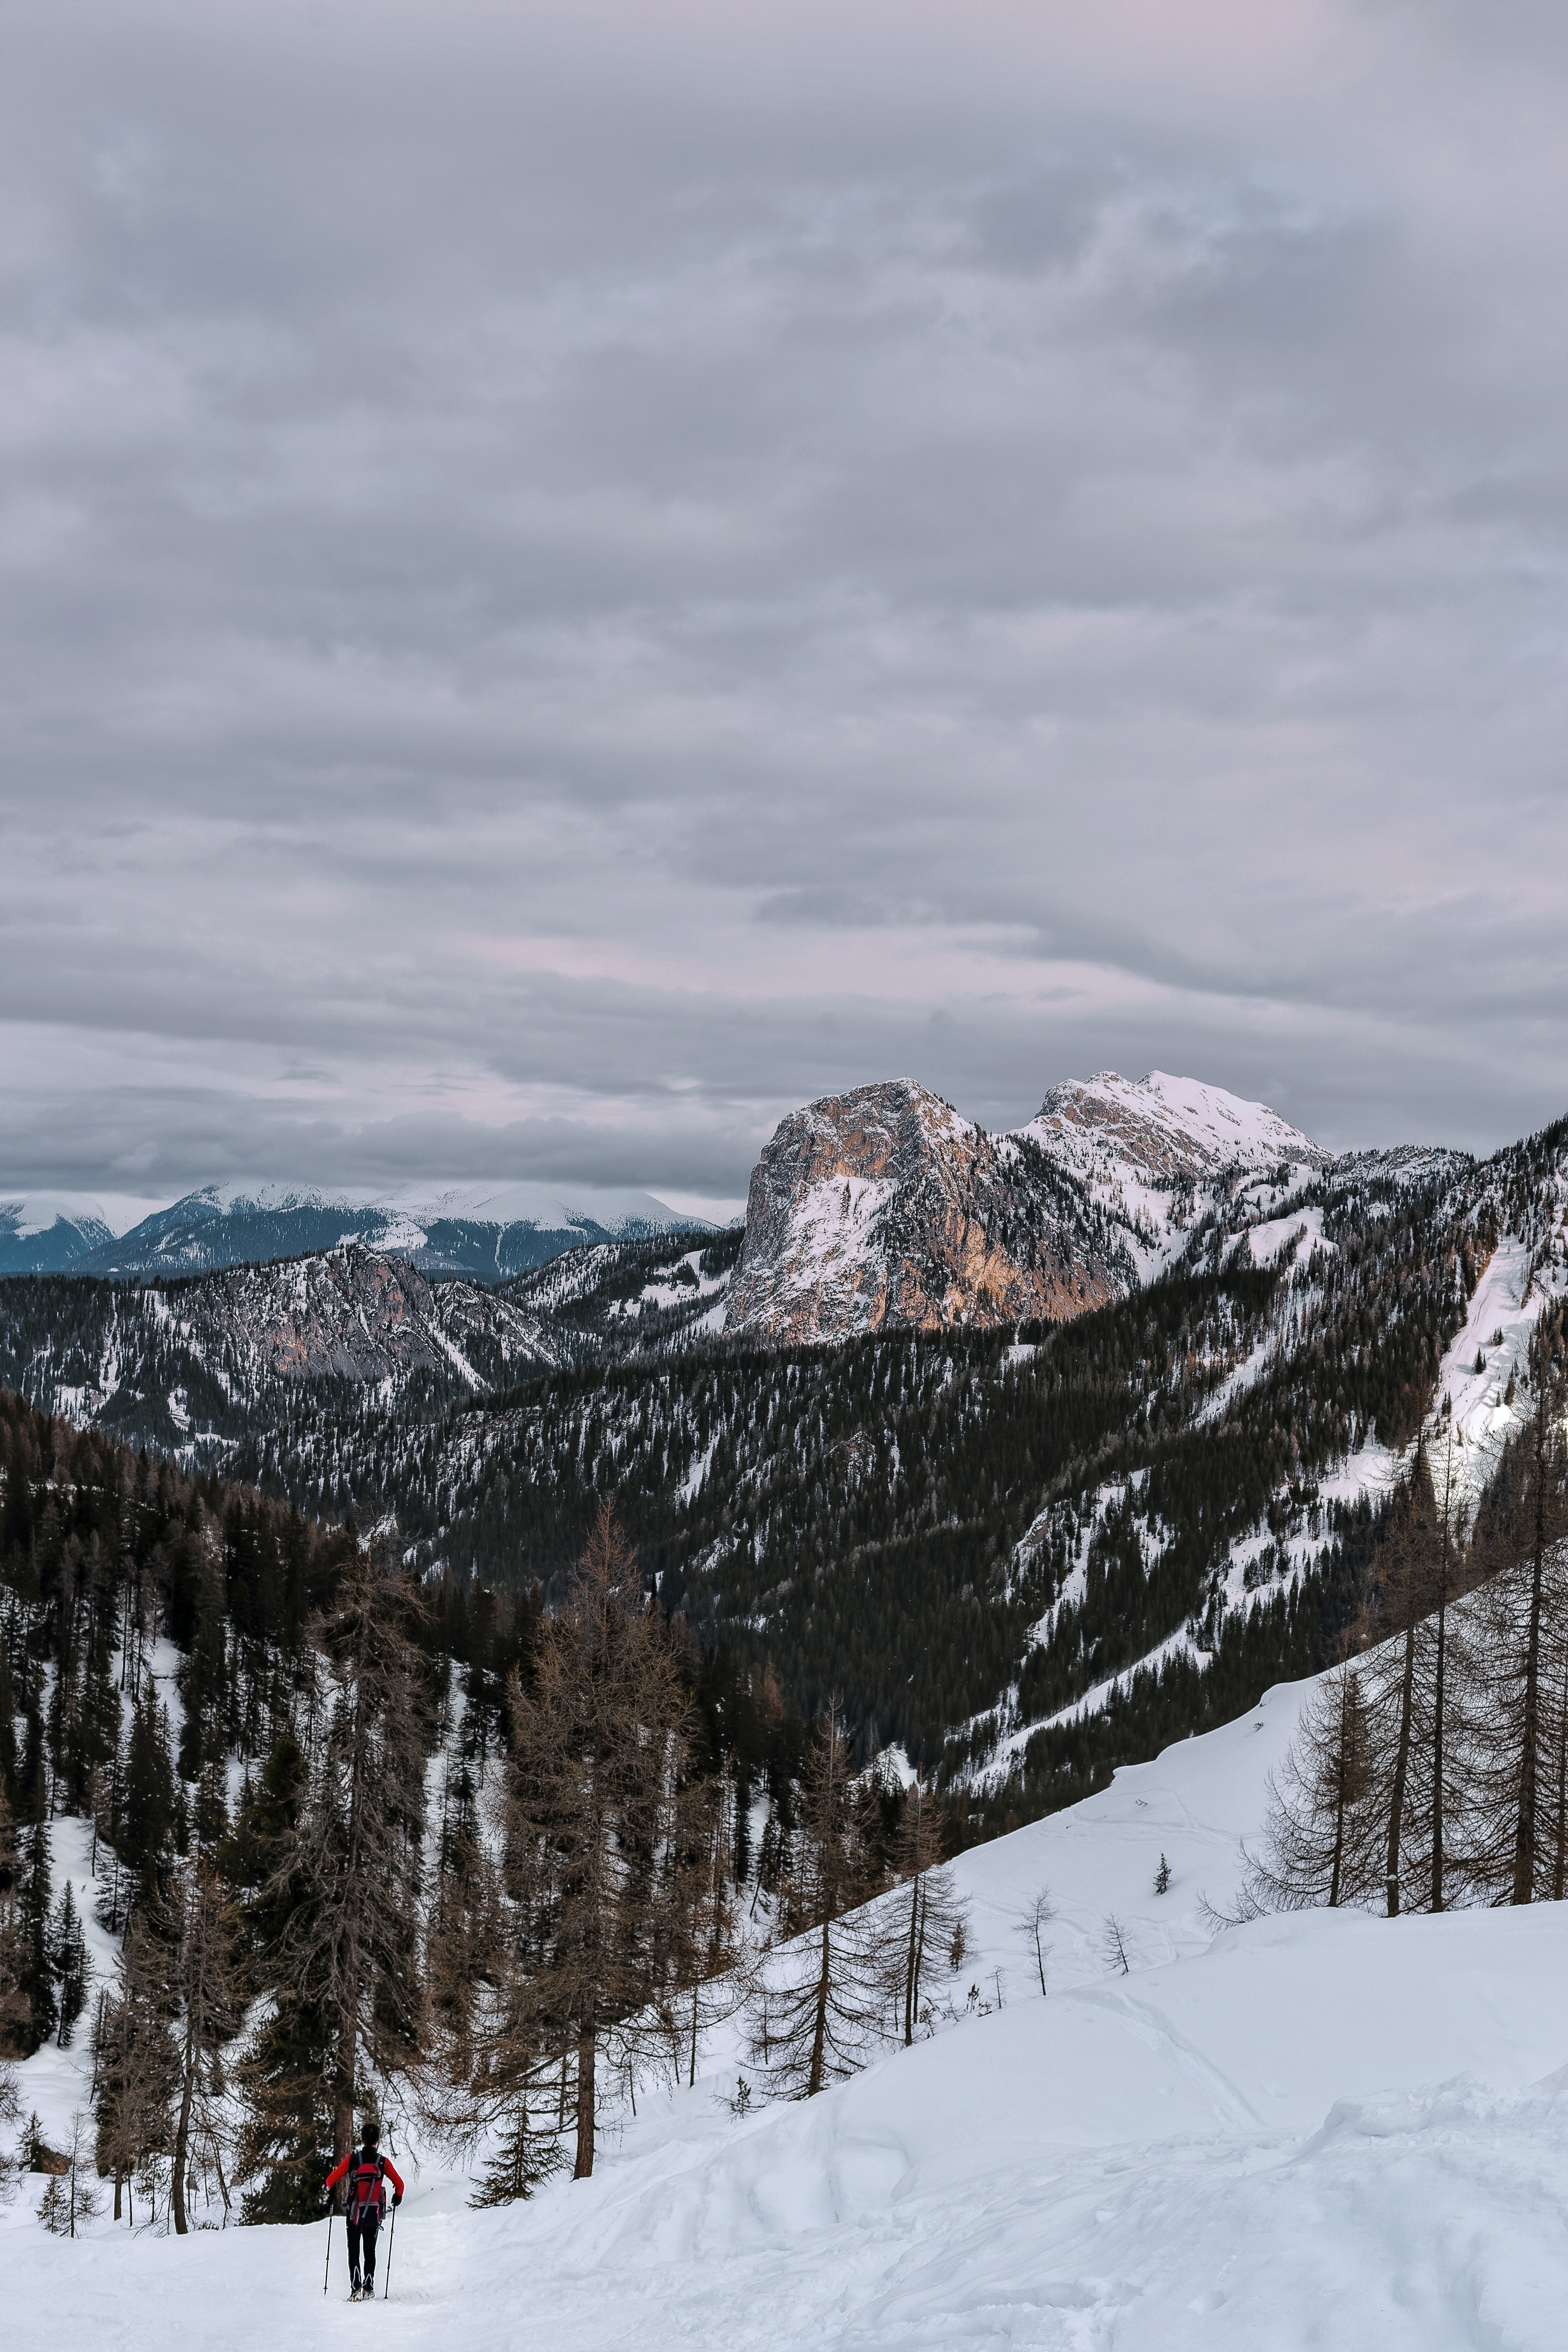 mountains covered with snow during cloudy daytime